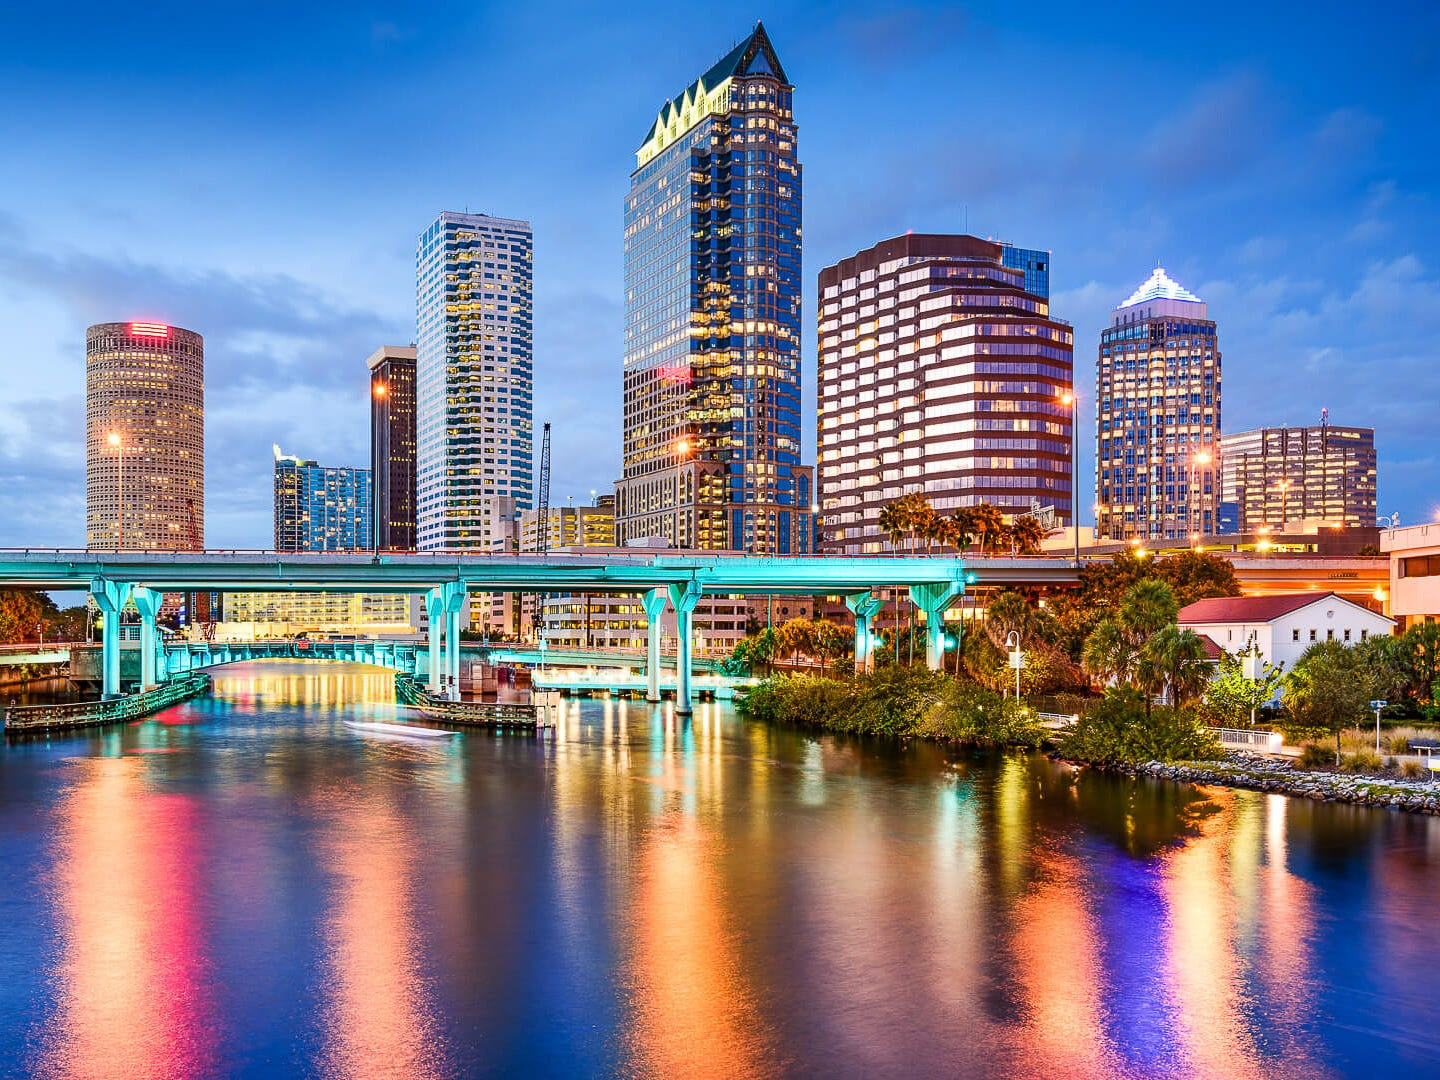 No. 15: 15. Tampa, Florida. Thanksgiving trip cost: $1,146. Christmas trip cost: $1,301.50. Escape to warmer weather with a relatively affordable holiday trip to Tampa. During Christmas, the average round-trip flight from Atlanta costs less than $200.